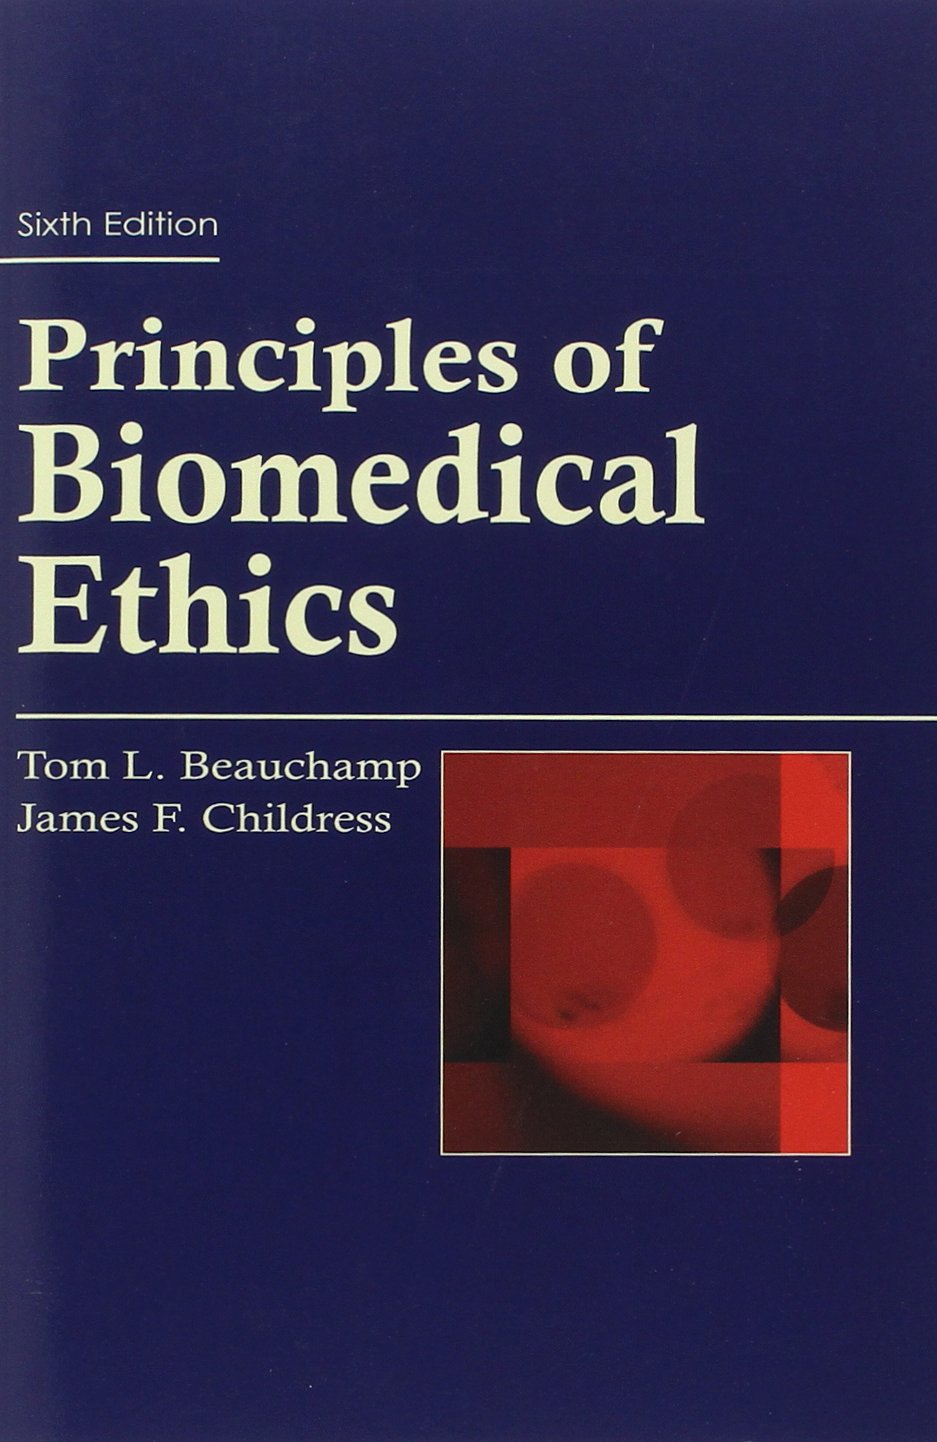 amazon principles of biomedical ethics principles of biomedical